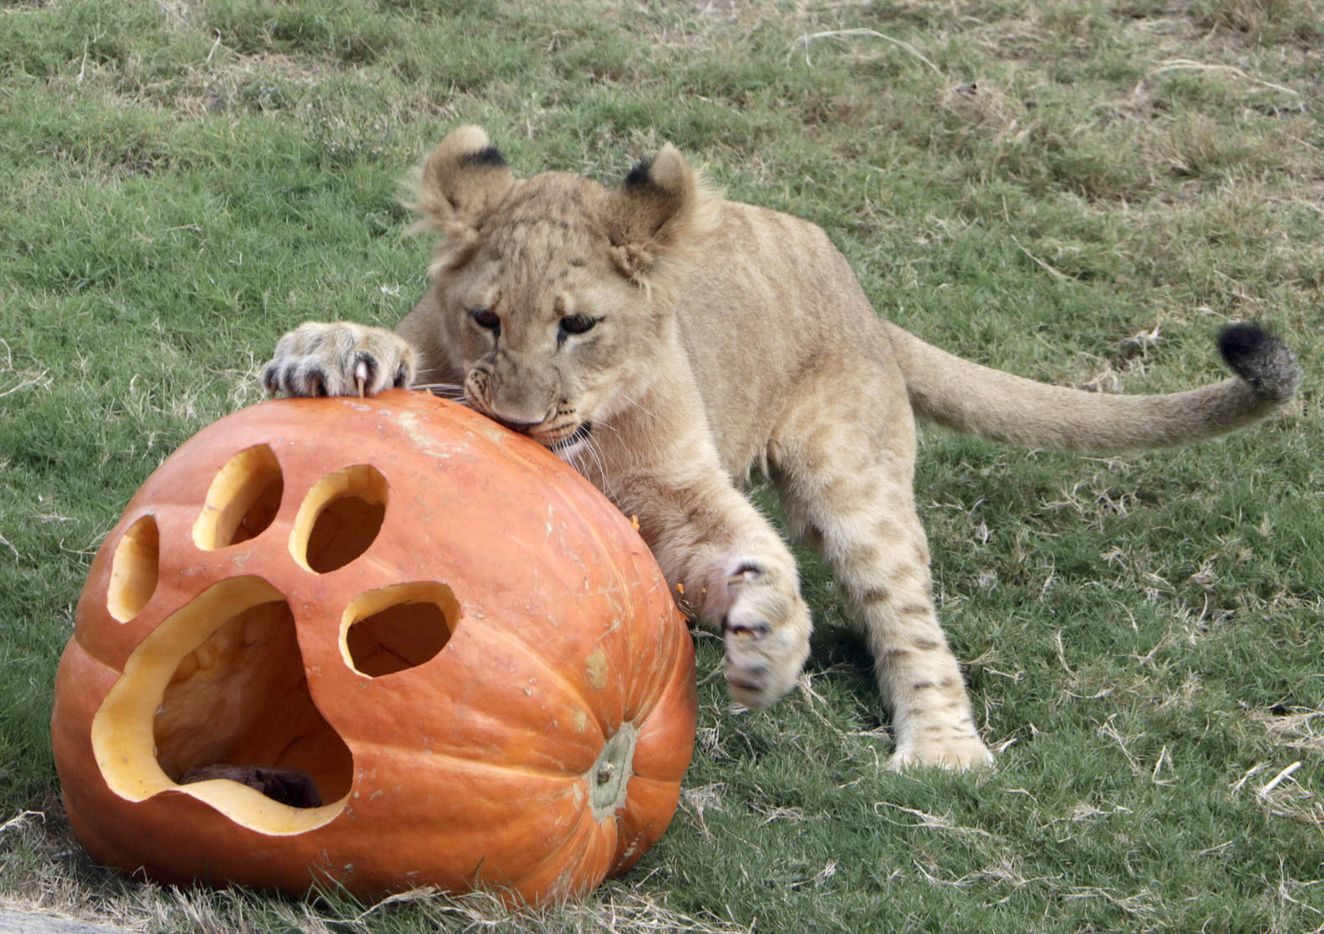 Animals at the Dallas Zoo celebrated Halloween on Tuesday, Oct. 31, 2017, with pumpkins, some filled with meaty treats or worms. Among the animals enjoying the pumpkins were lion cub Bahati.